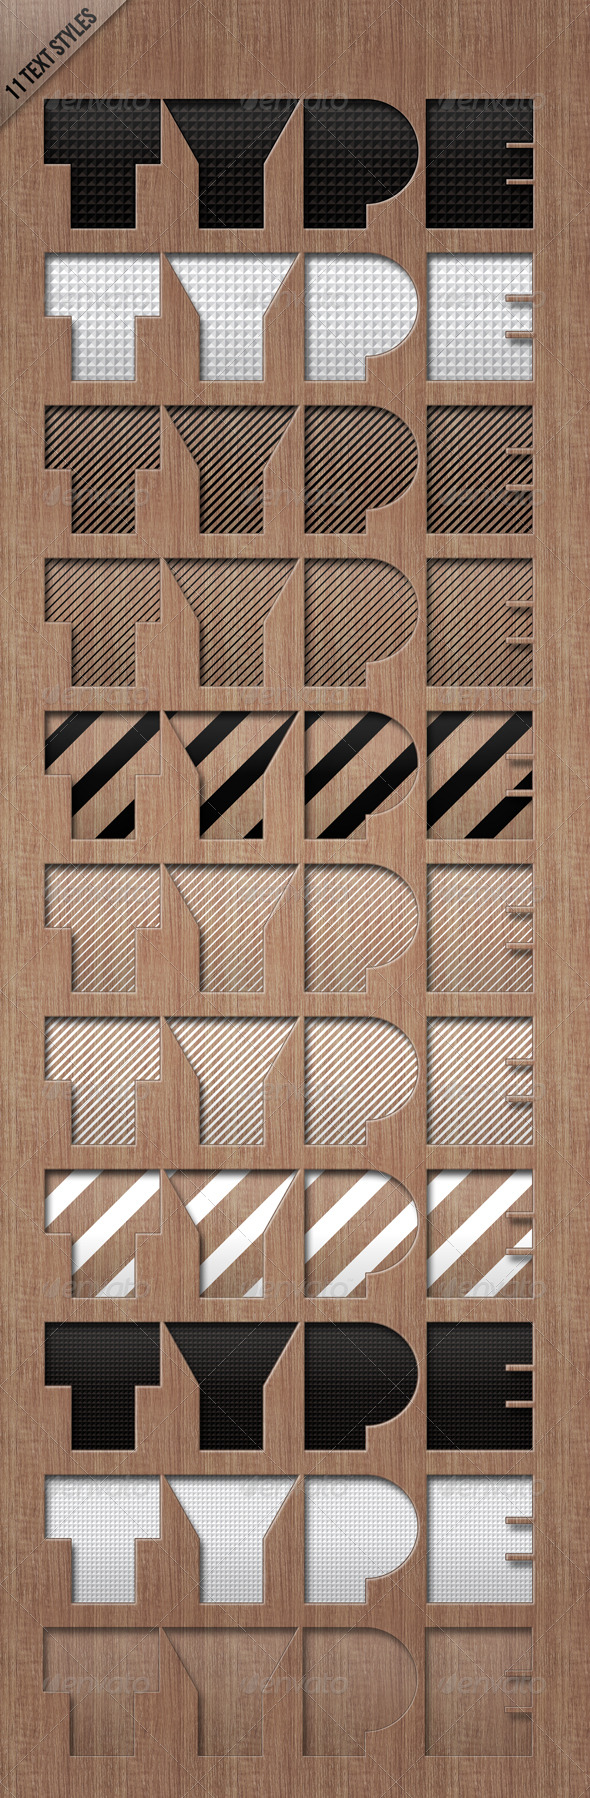 GraphicRiver Text Styles LETTERPRESSED 179360